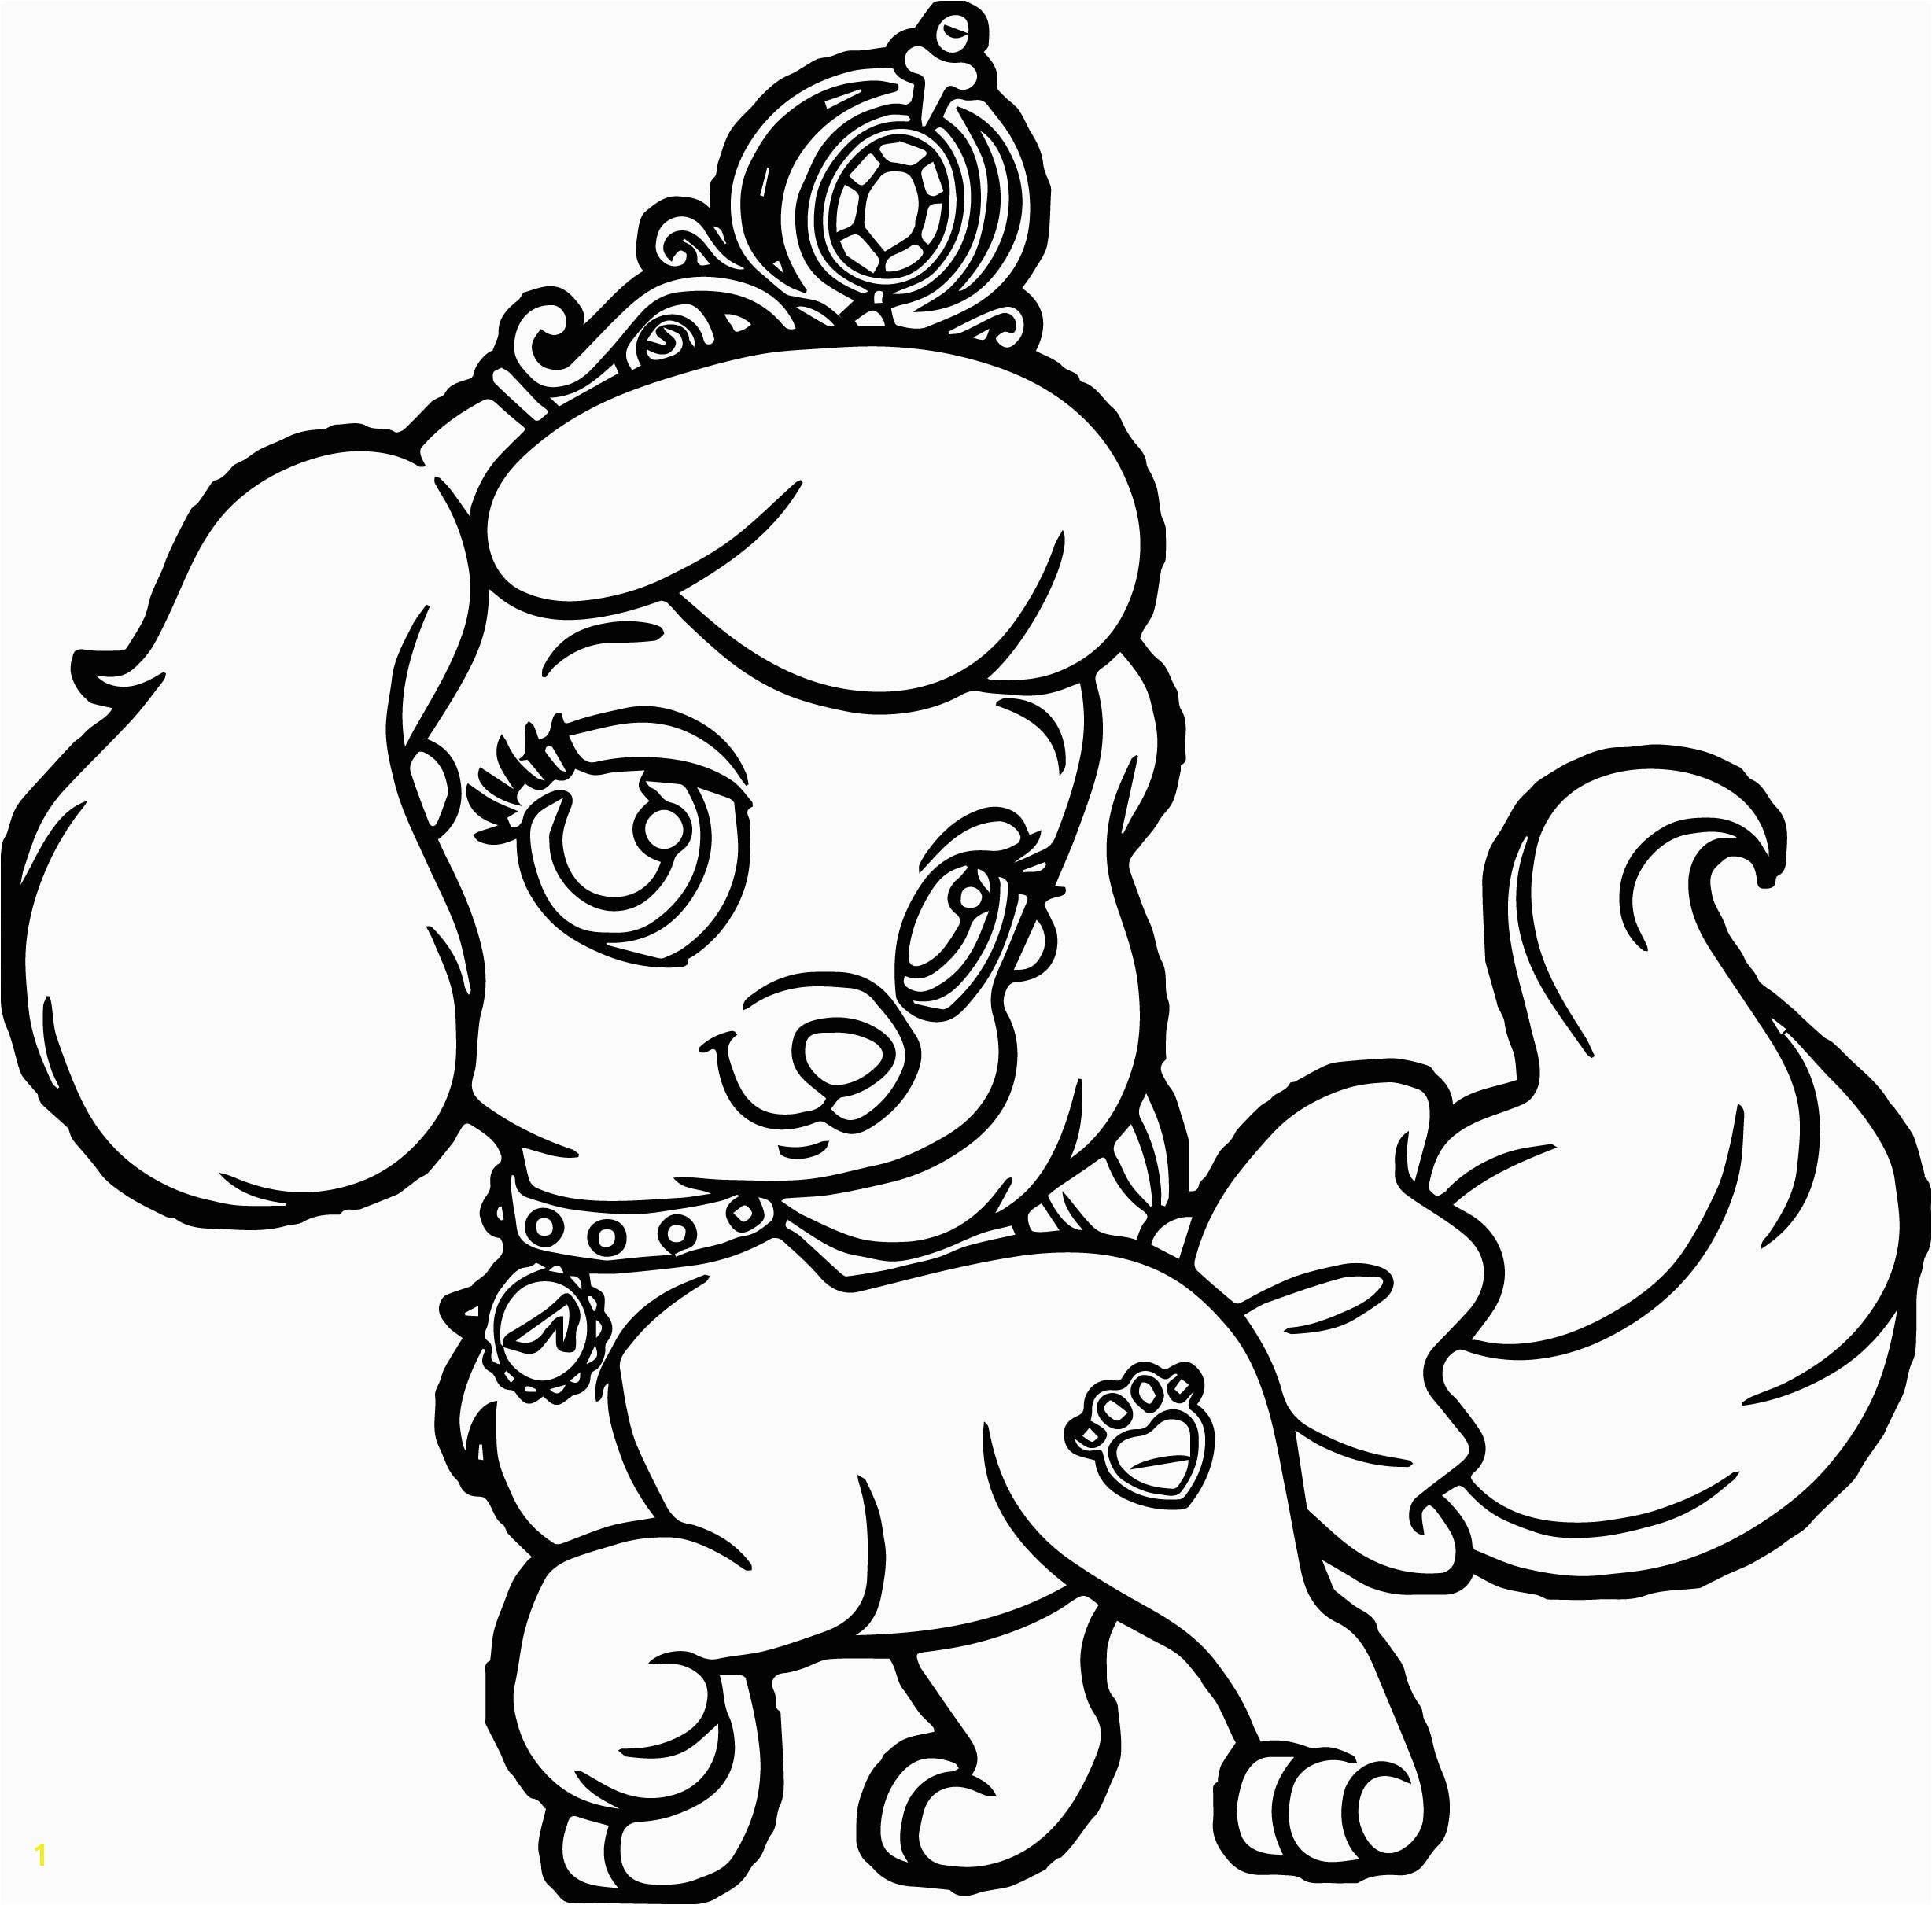 Clifford Thanksgiving Coloring Pages Unique Successful Doggie Coloring Pages Clifford the Big Red Dog and 2841